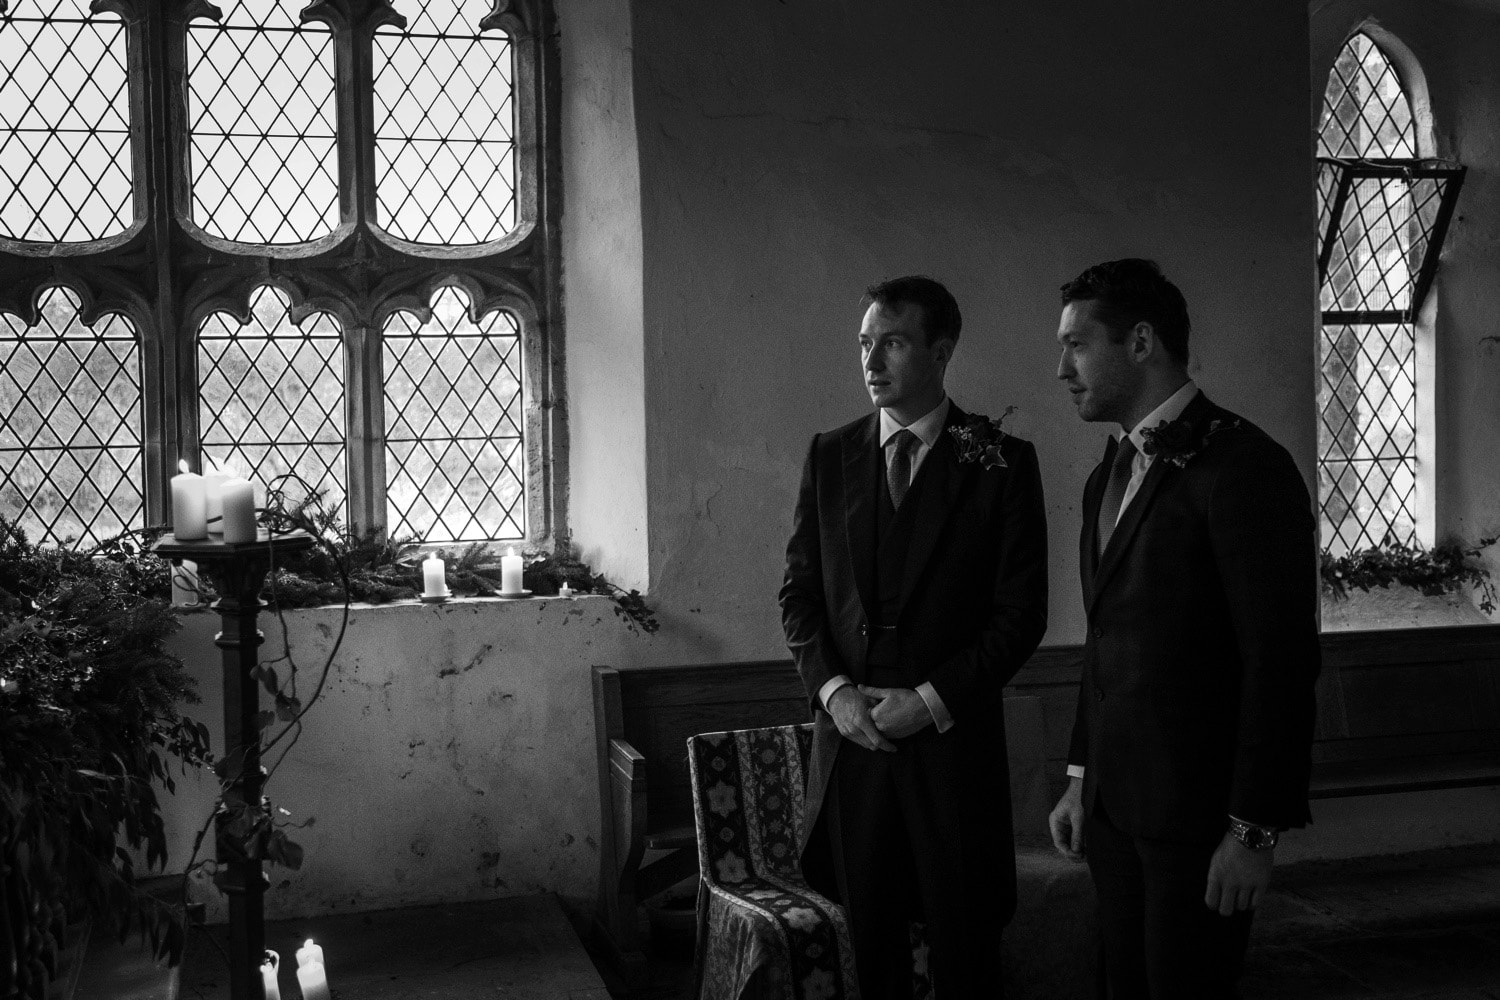 Groom and best man waiting at alter